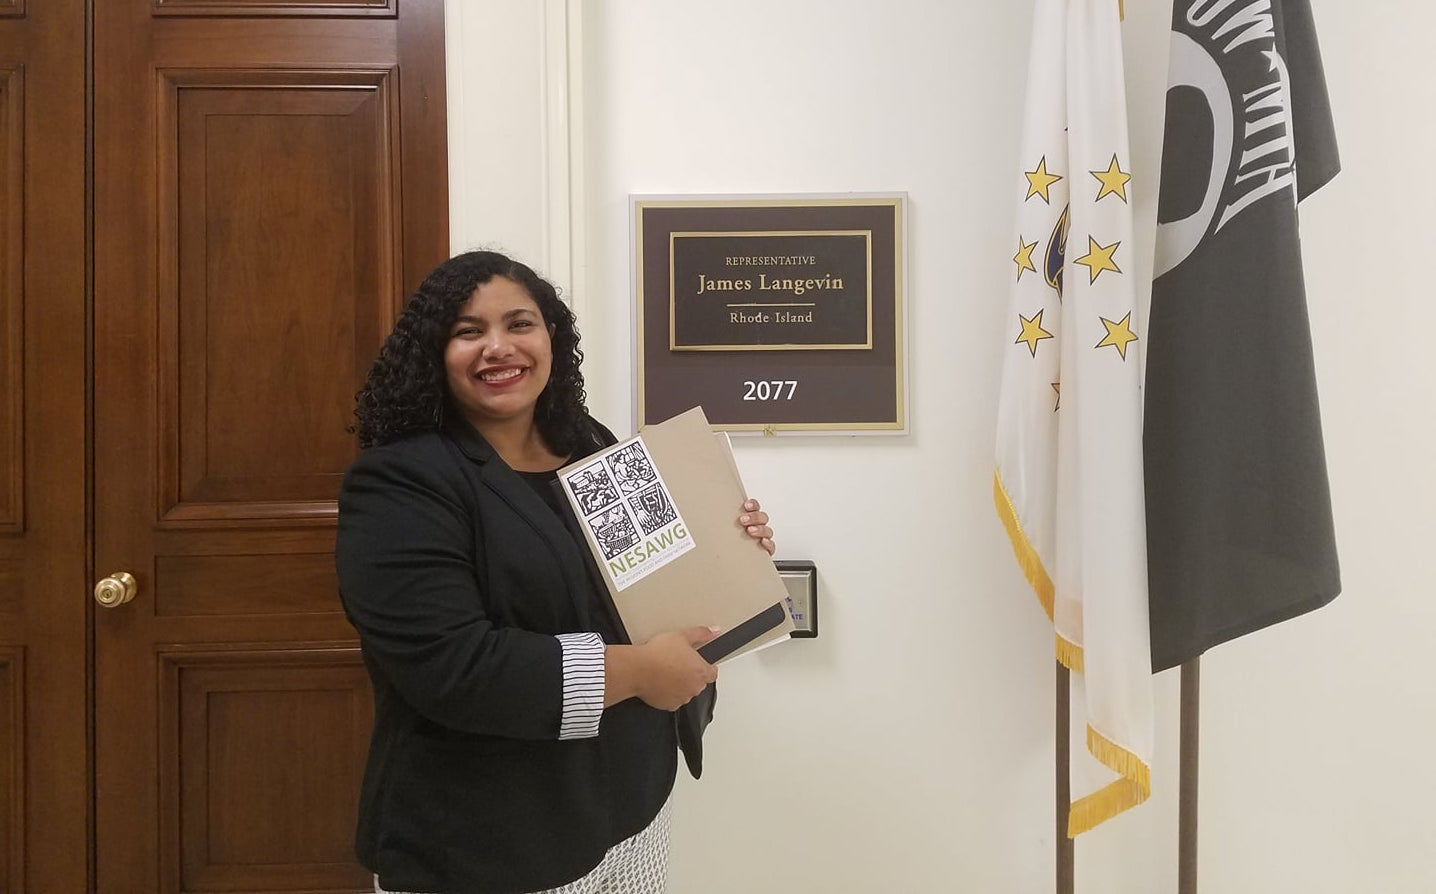 The author outside of Rep. James Langevin's office in Congress, holding up her advocacy day materials.